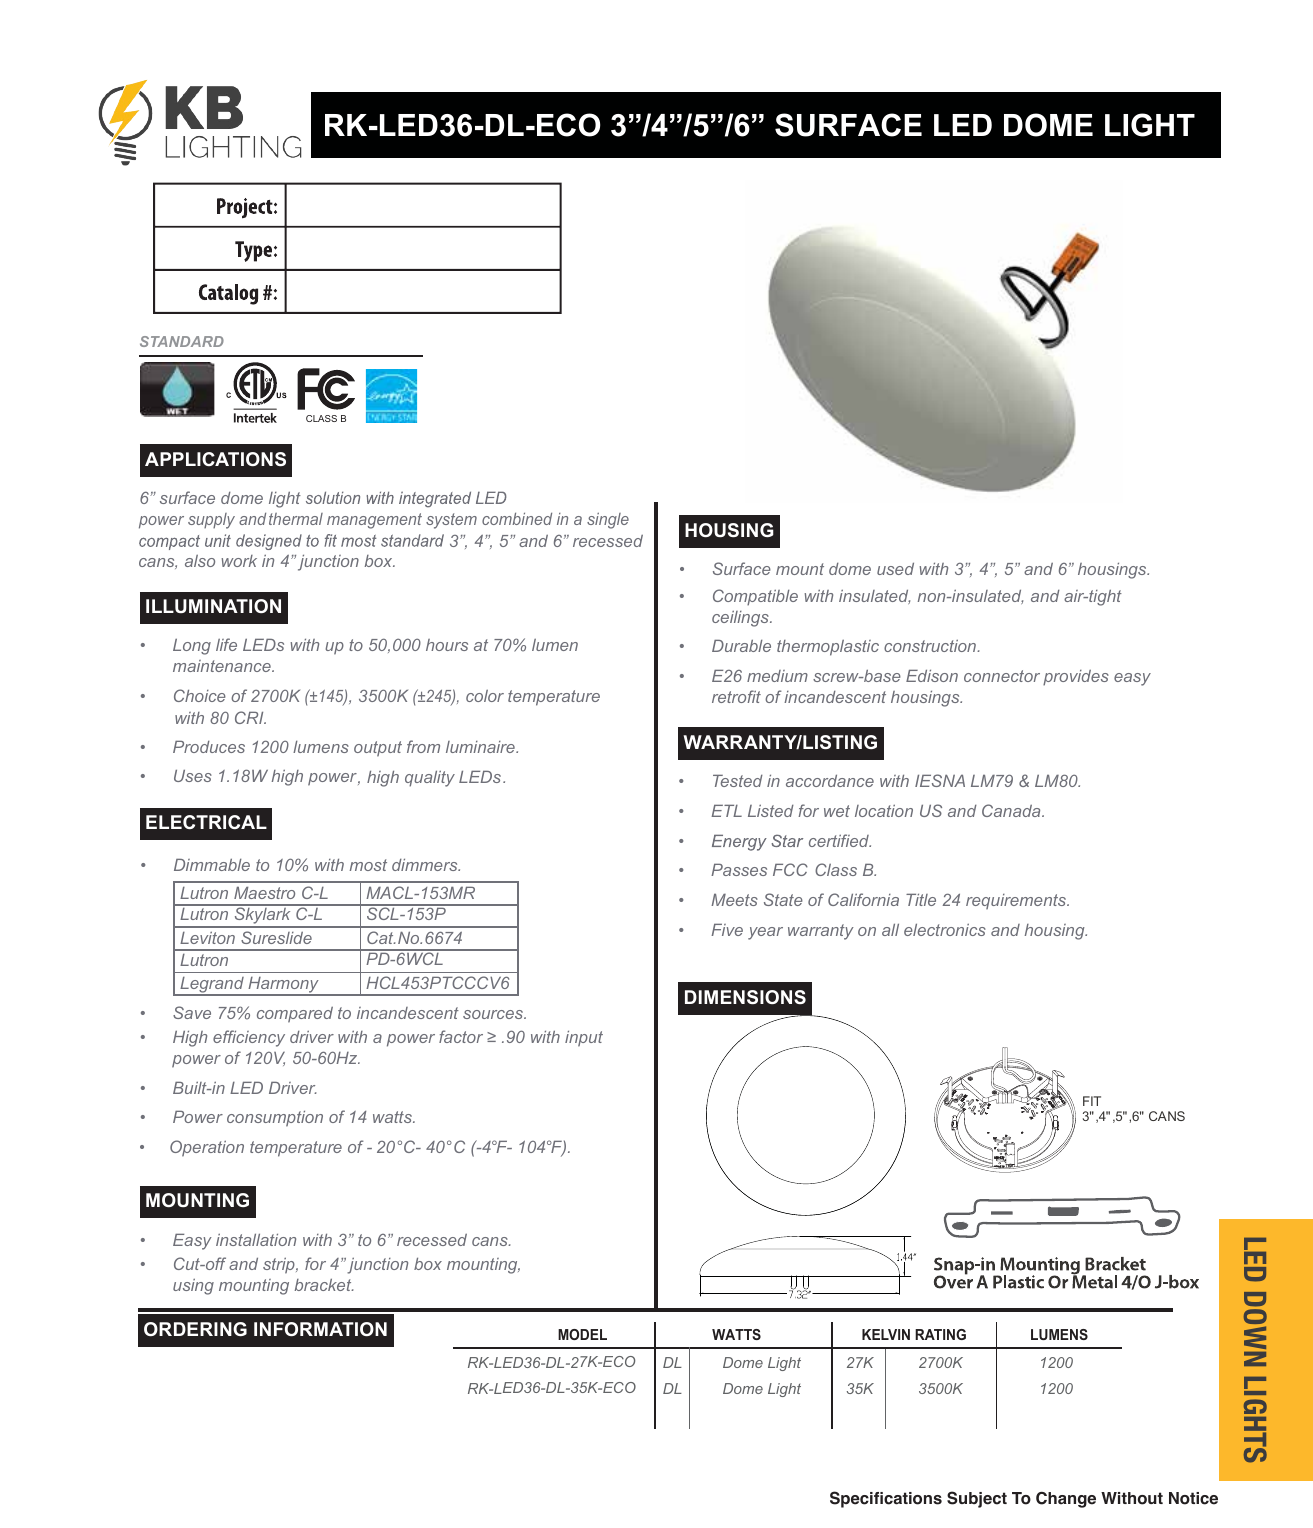 RK-LED36-DL-ECO 3